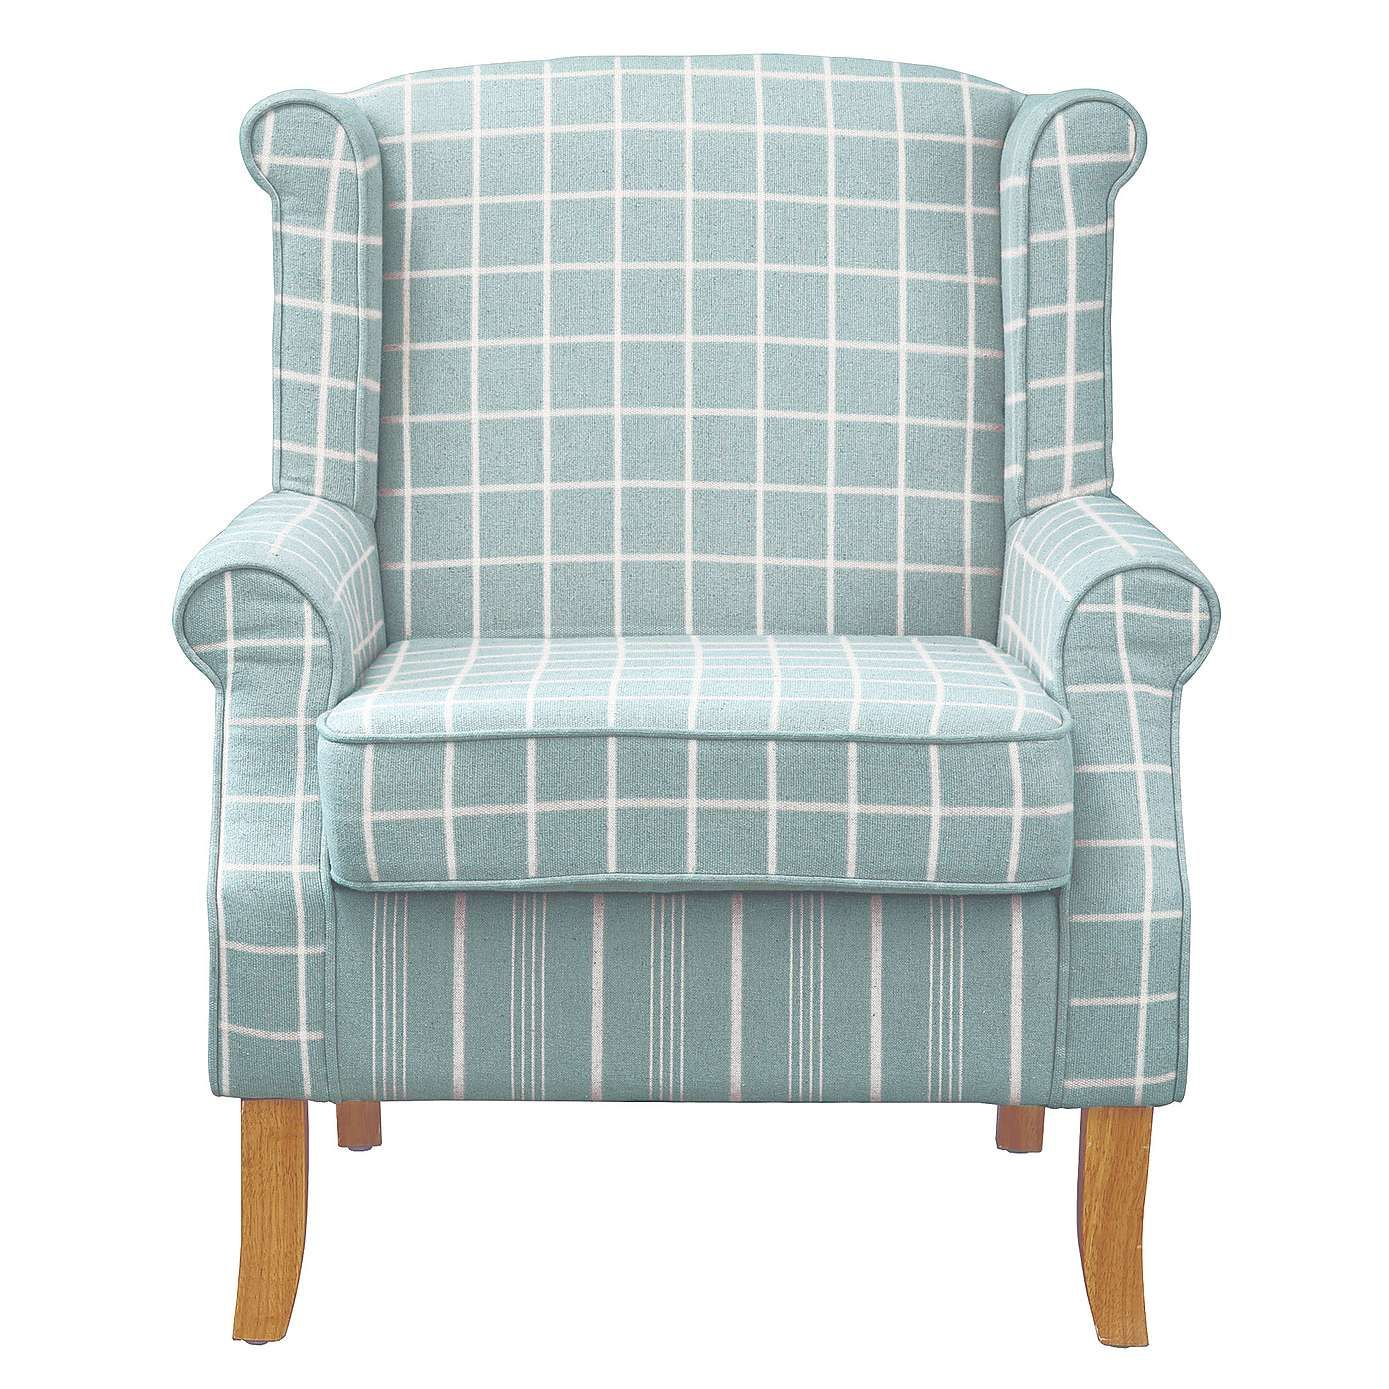 recliner chair covers dunelm free church chairs donation duck egg check edinburgh wingback armchairs